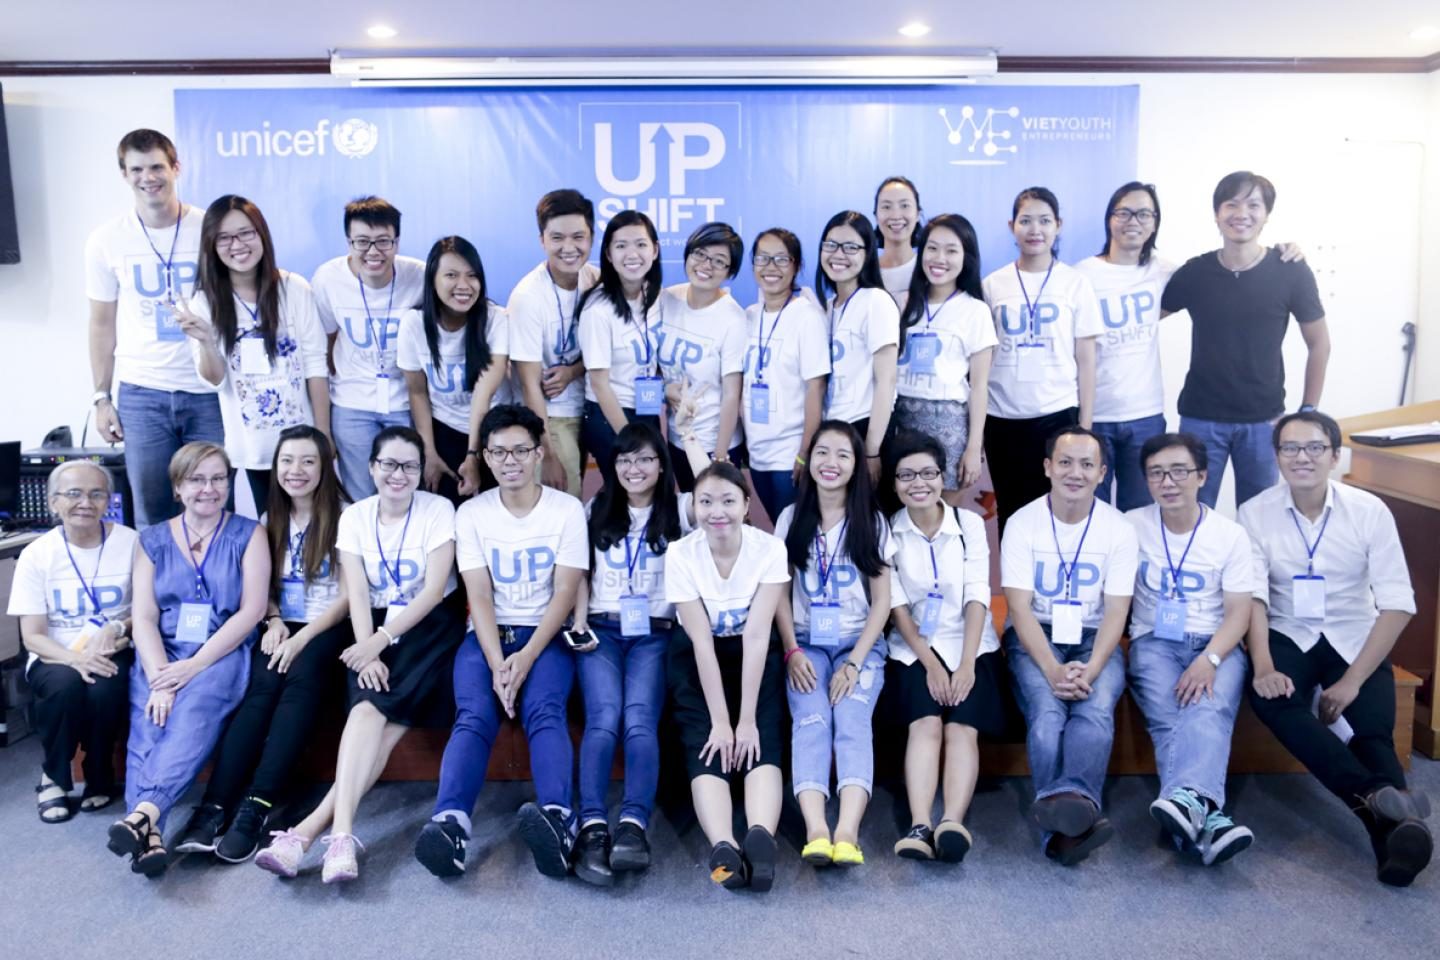 Mentors, supporters, and UPSHIFT Organizers with the teams at the UPSHIFT Workshop.